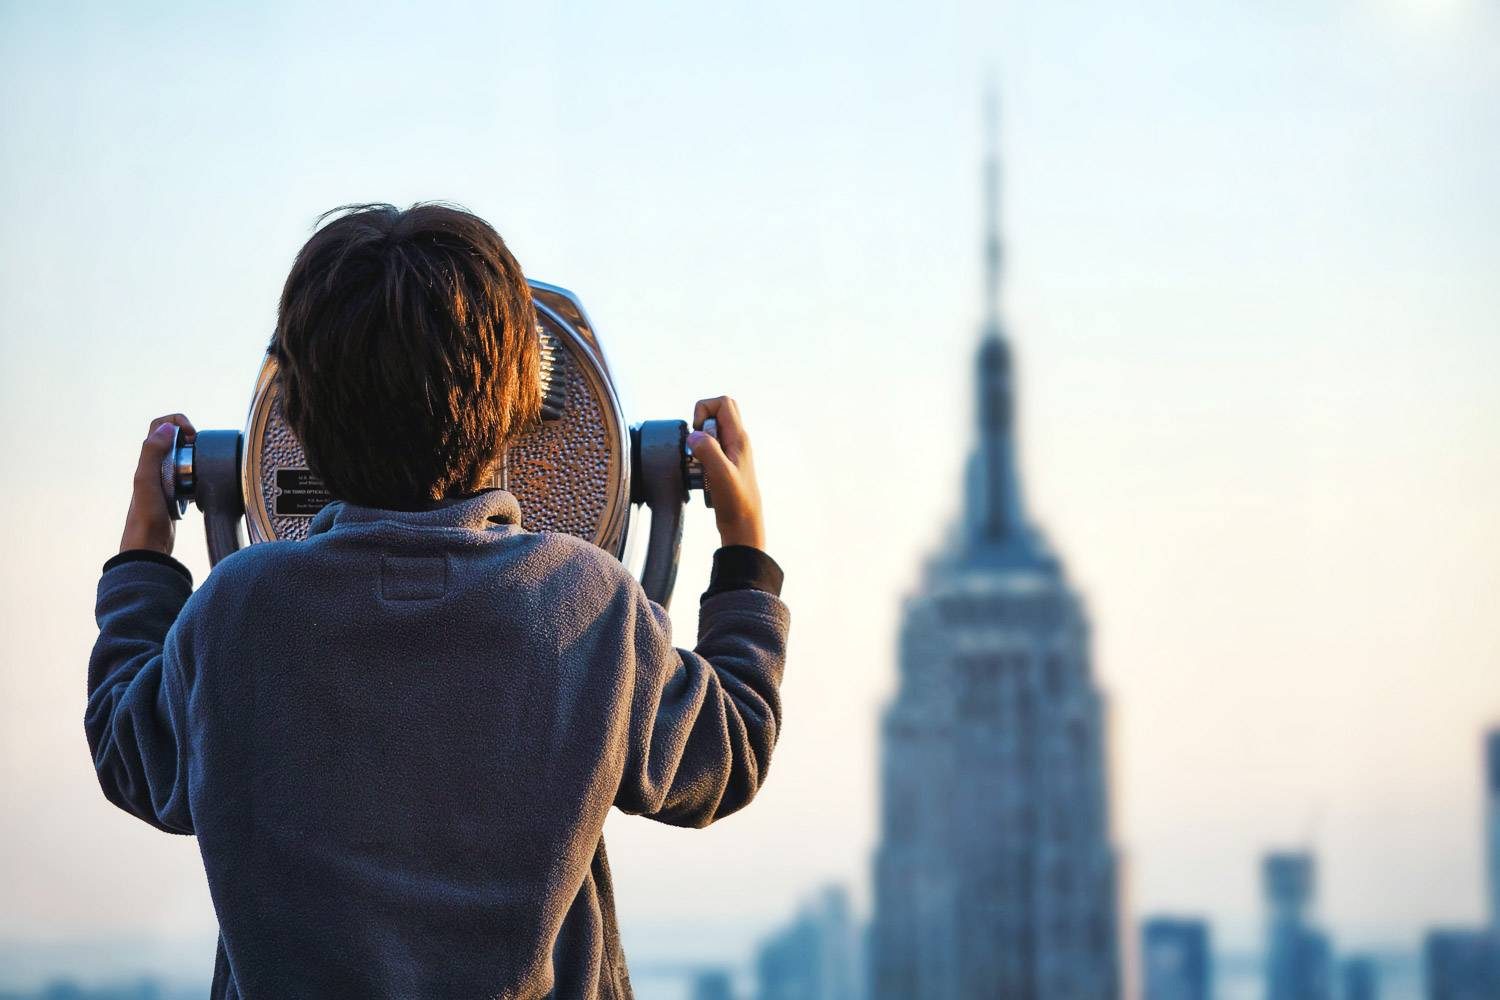 Image d'un enfant regardant l'Empire State Building à travers un télescope (Crédit photo : Unsplash)